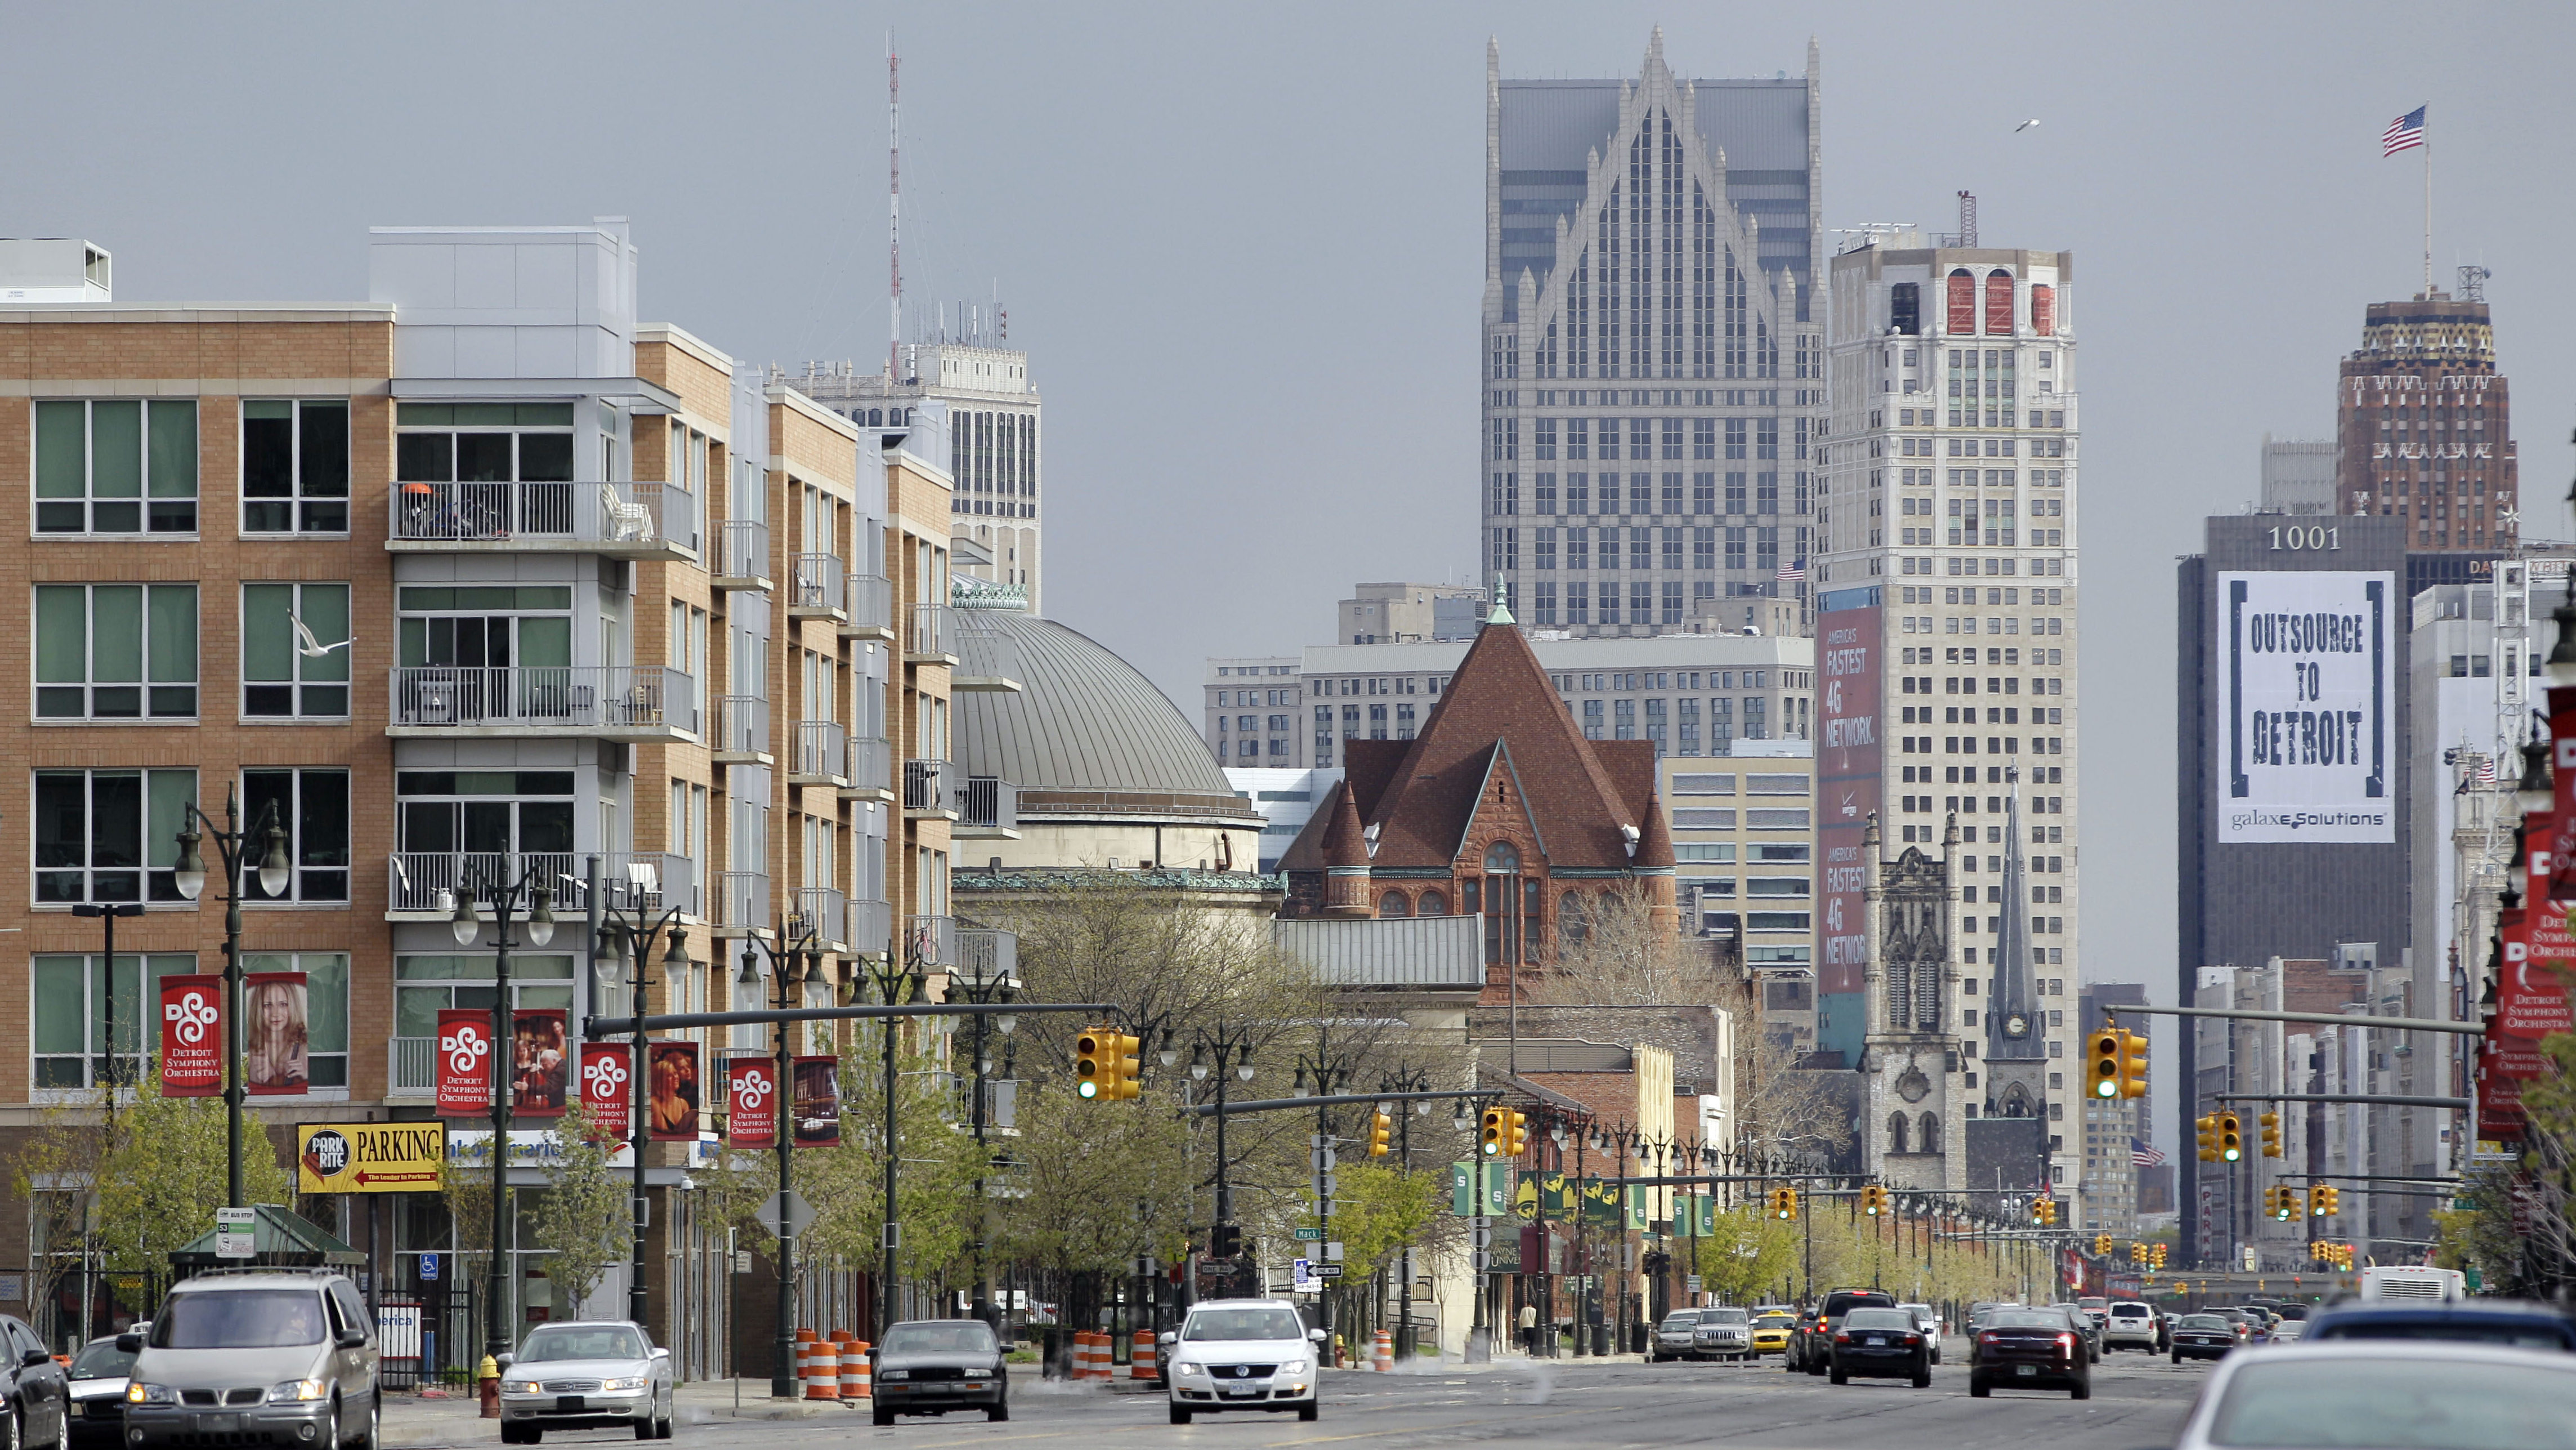 A 'Tale Of Two Cities' As Detroit Looks To 2014